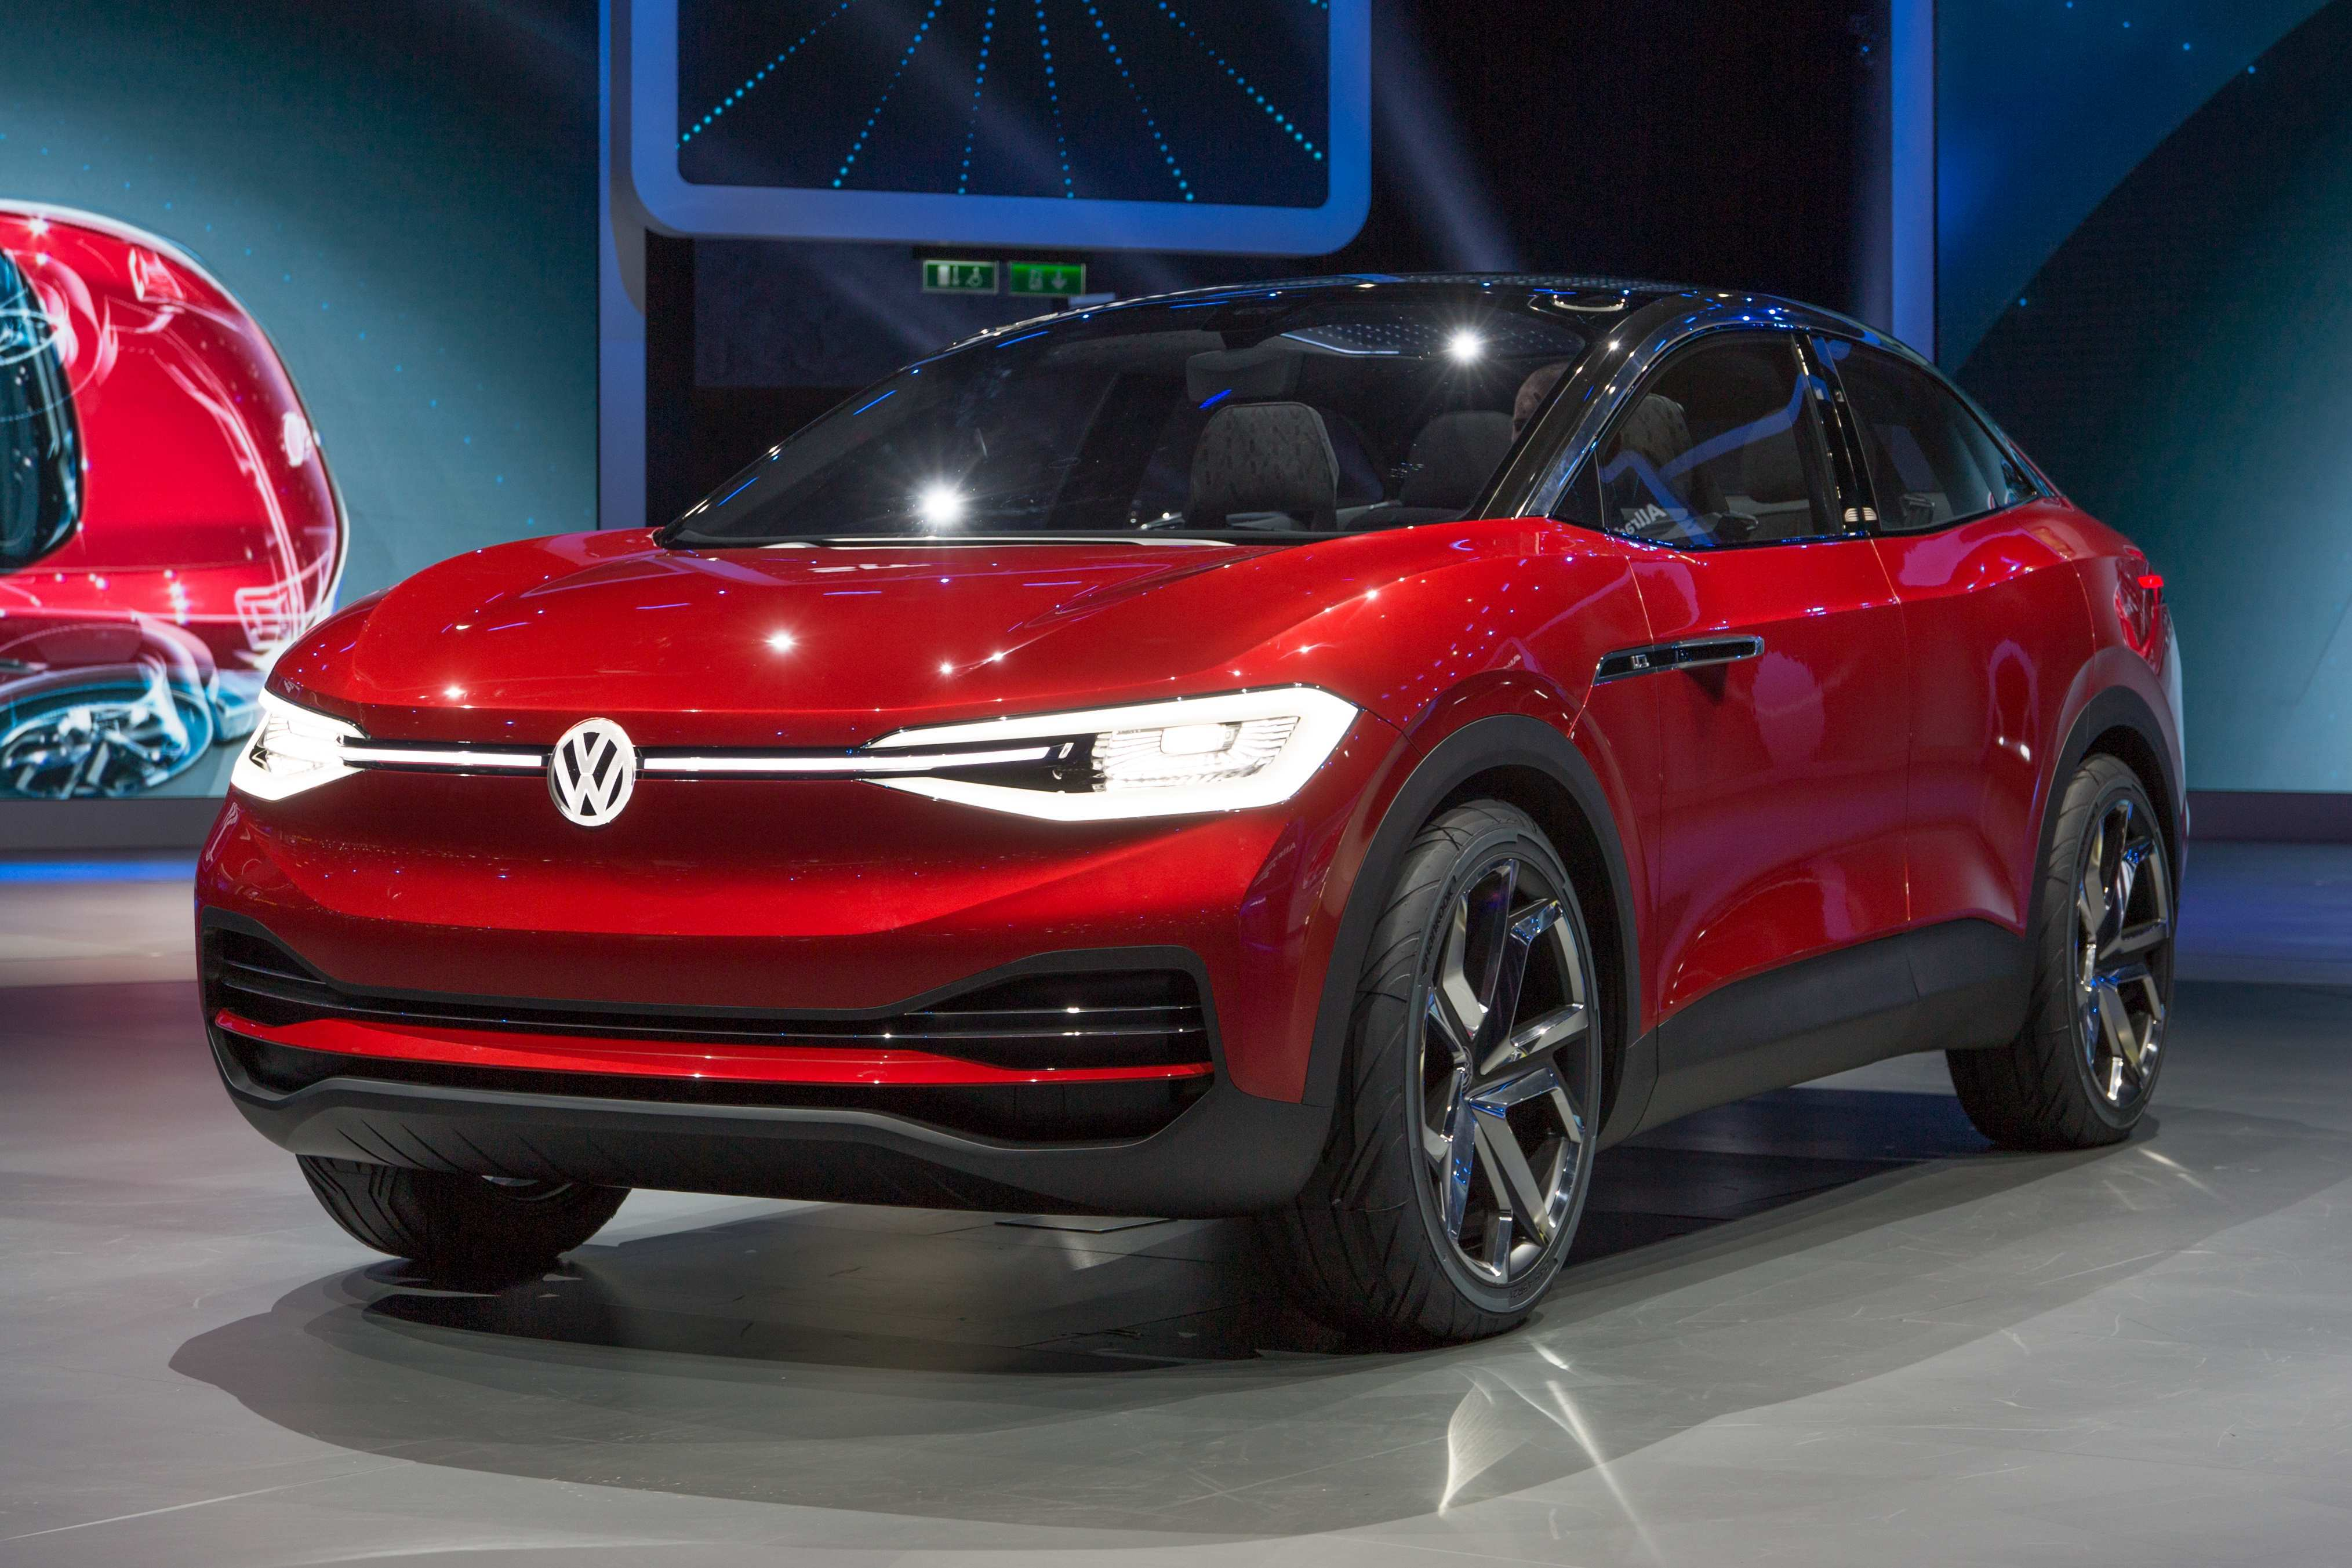 99 The Volkswagen Upcoming Cars 2020 Model with Volkswagen Upcoming Cars 2020